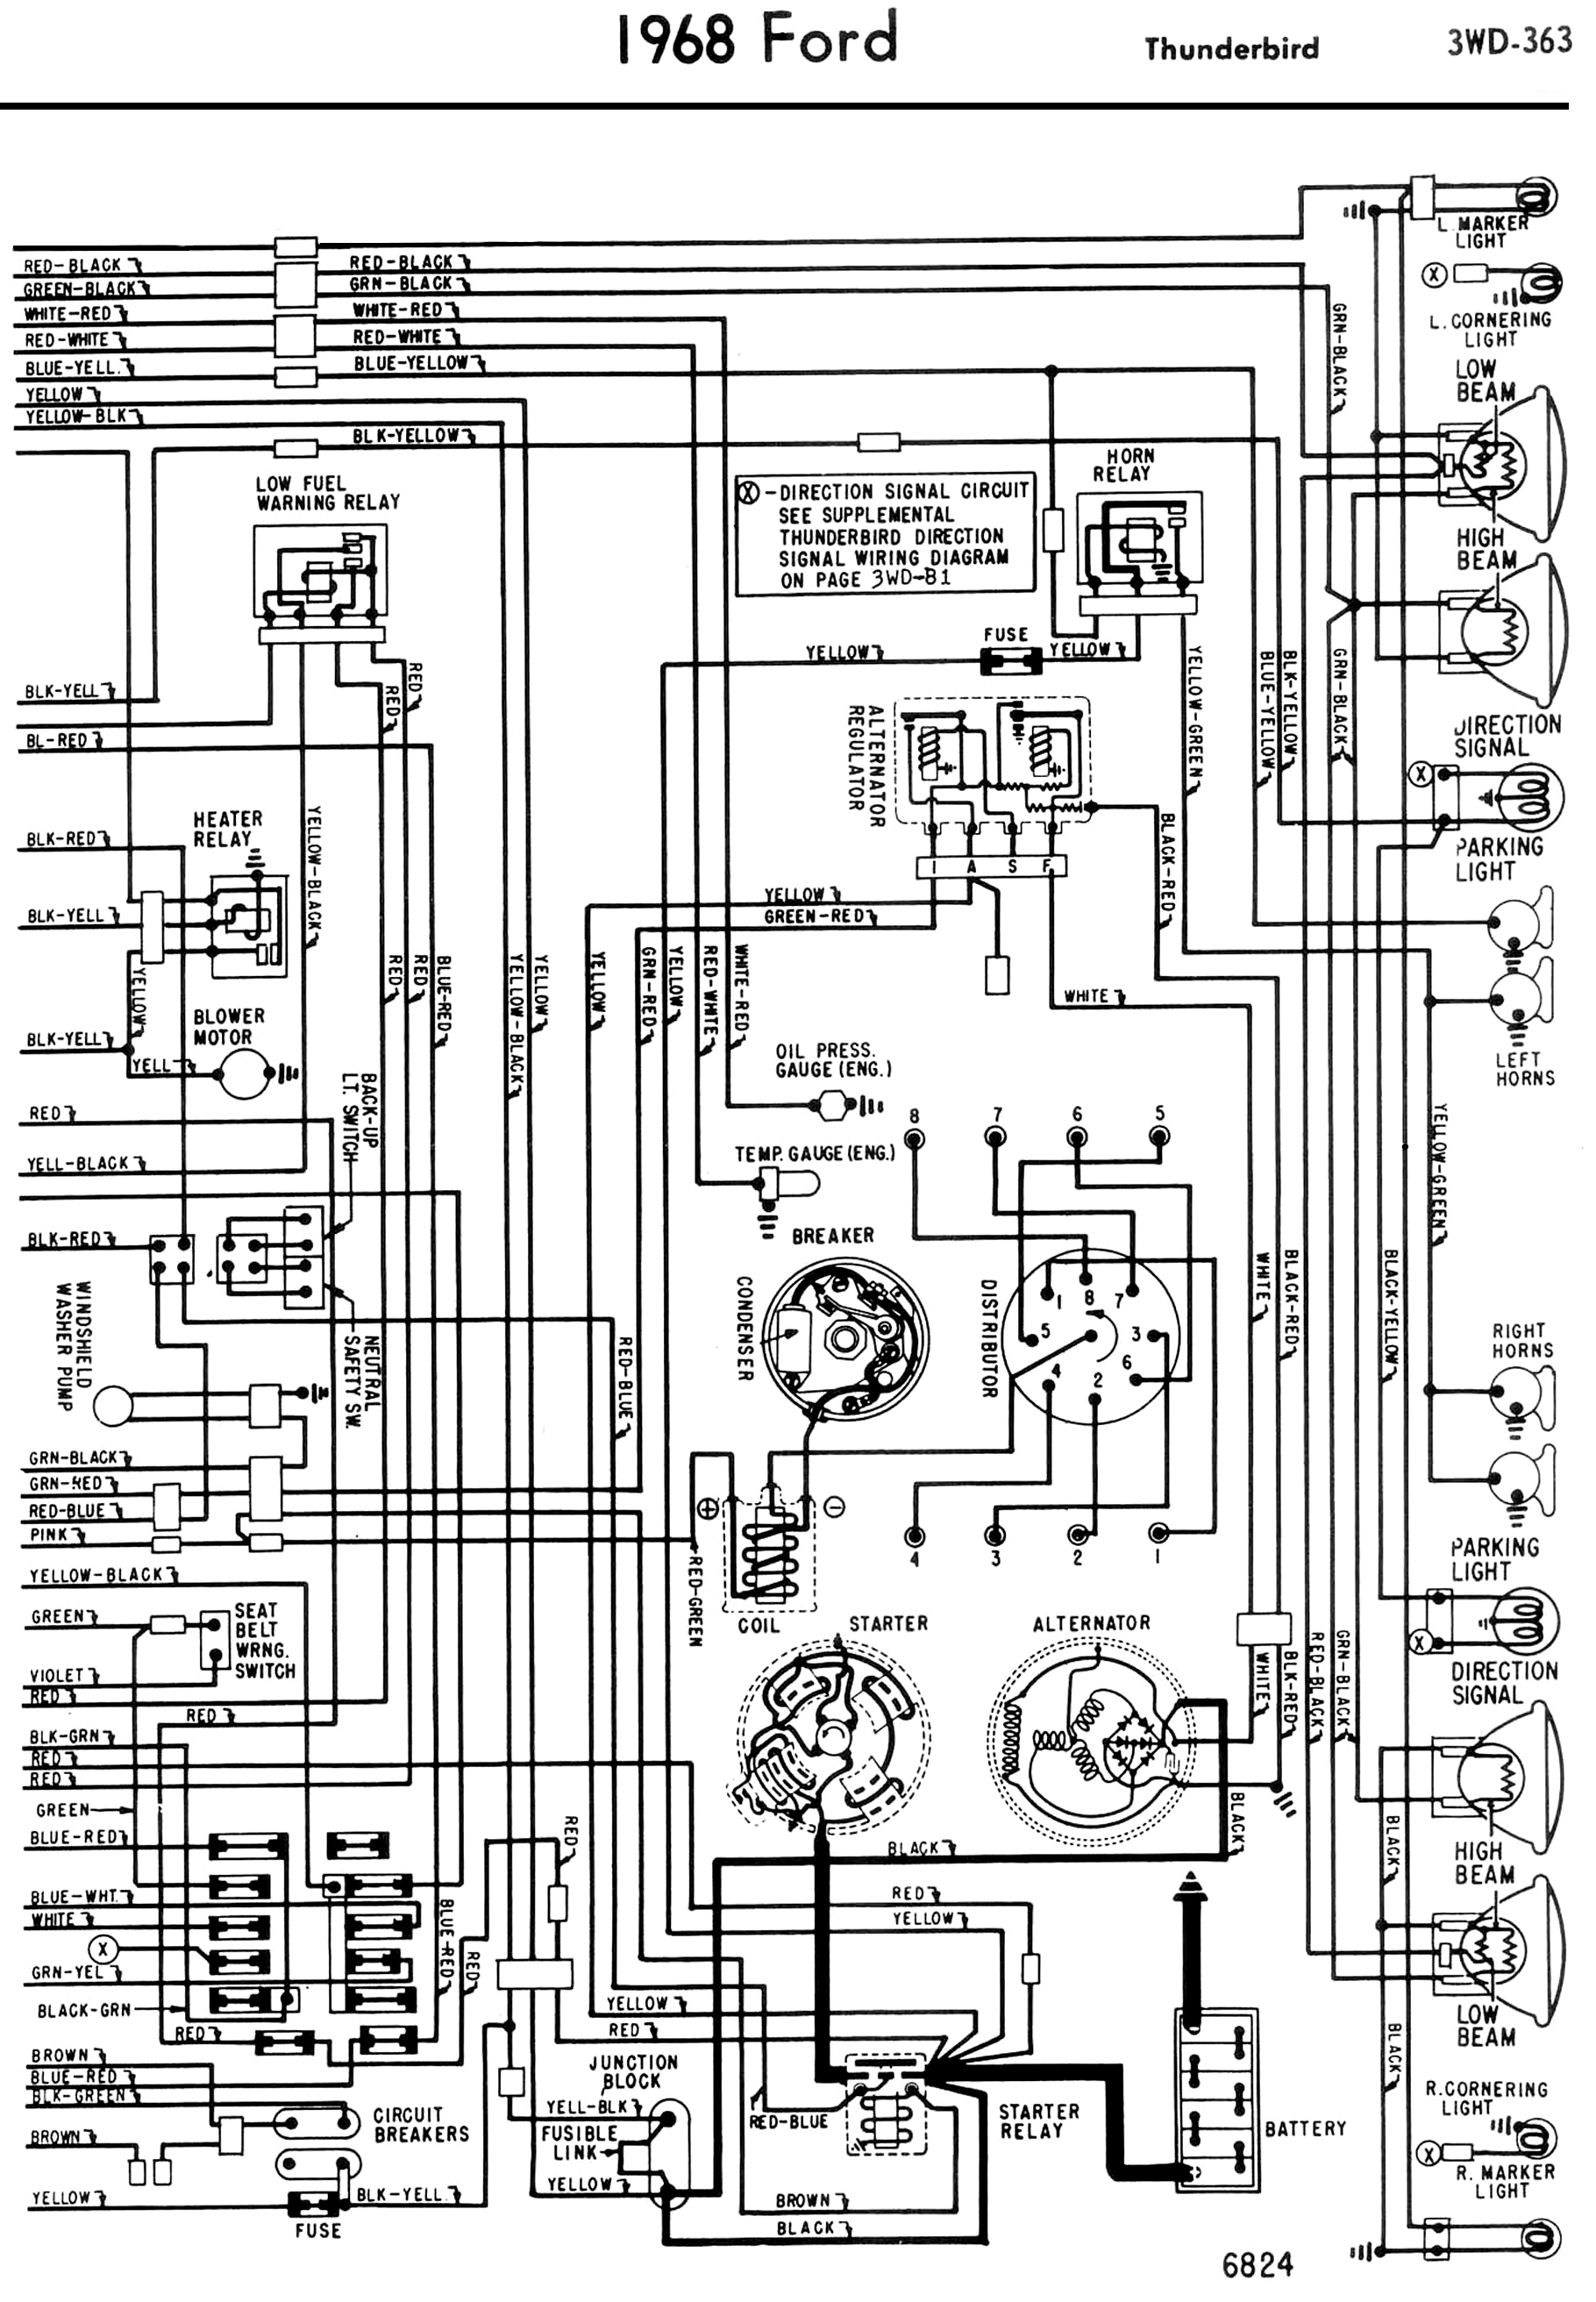 1997 ford thunderbird wiring diagram 1972 f250 2003 jeep wrangler engine harness library